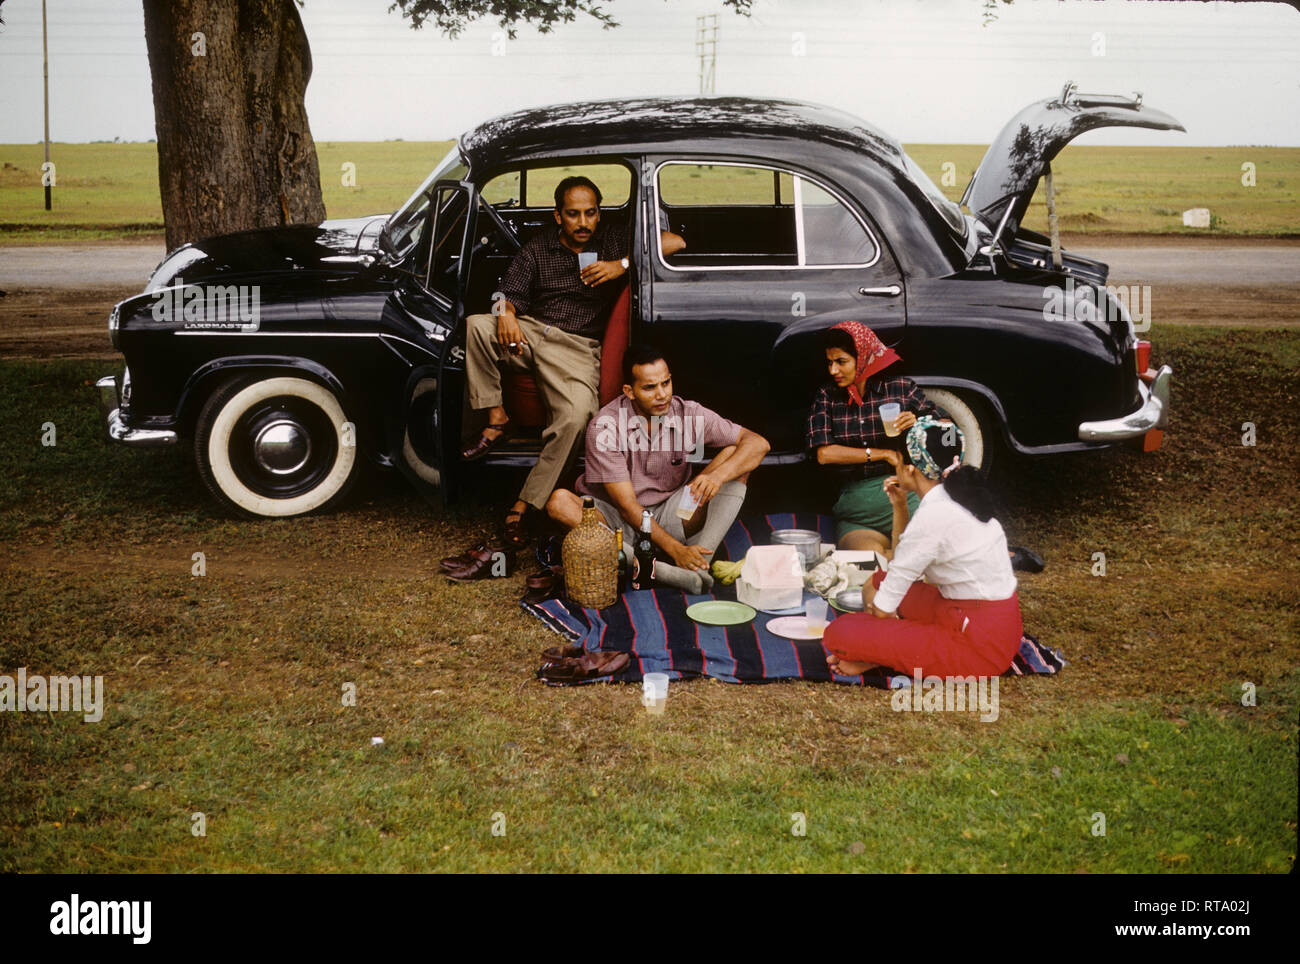 People having a picnic with Hindustan Landmaster car in India 1957 - Stock Image